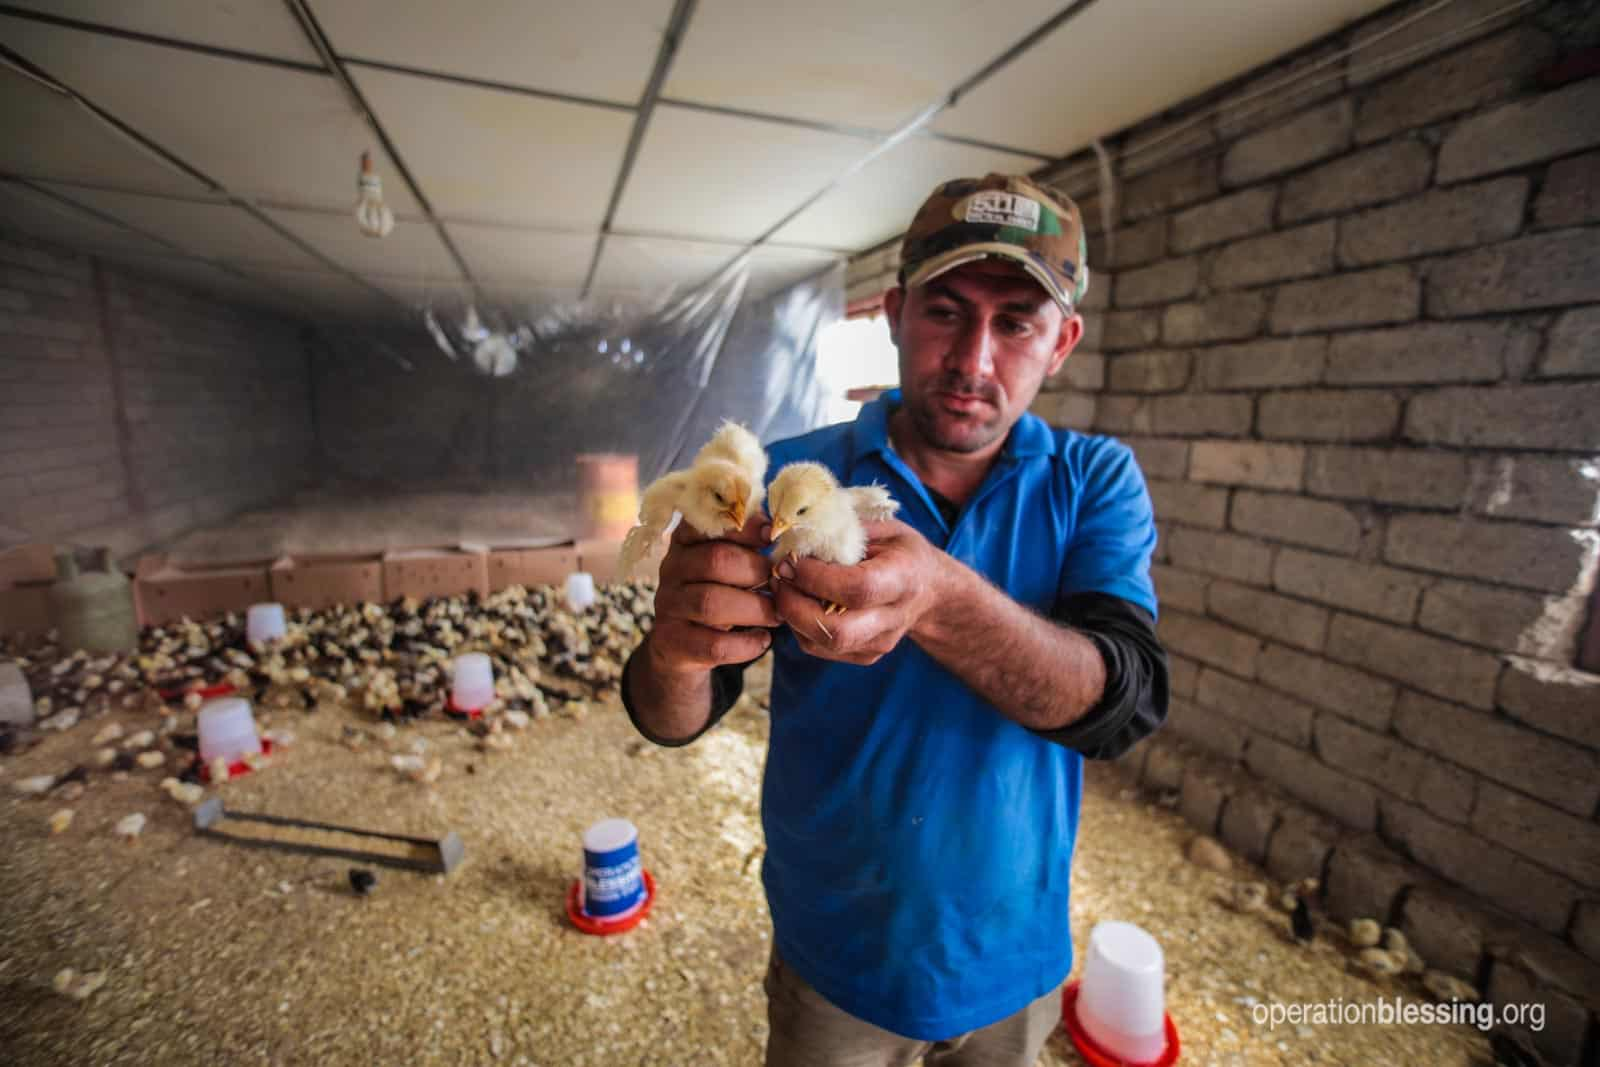 A man holds up baby chickens that will help restart business in the farmland outside Qaraqosh.